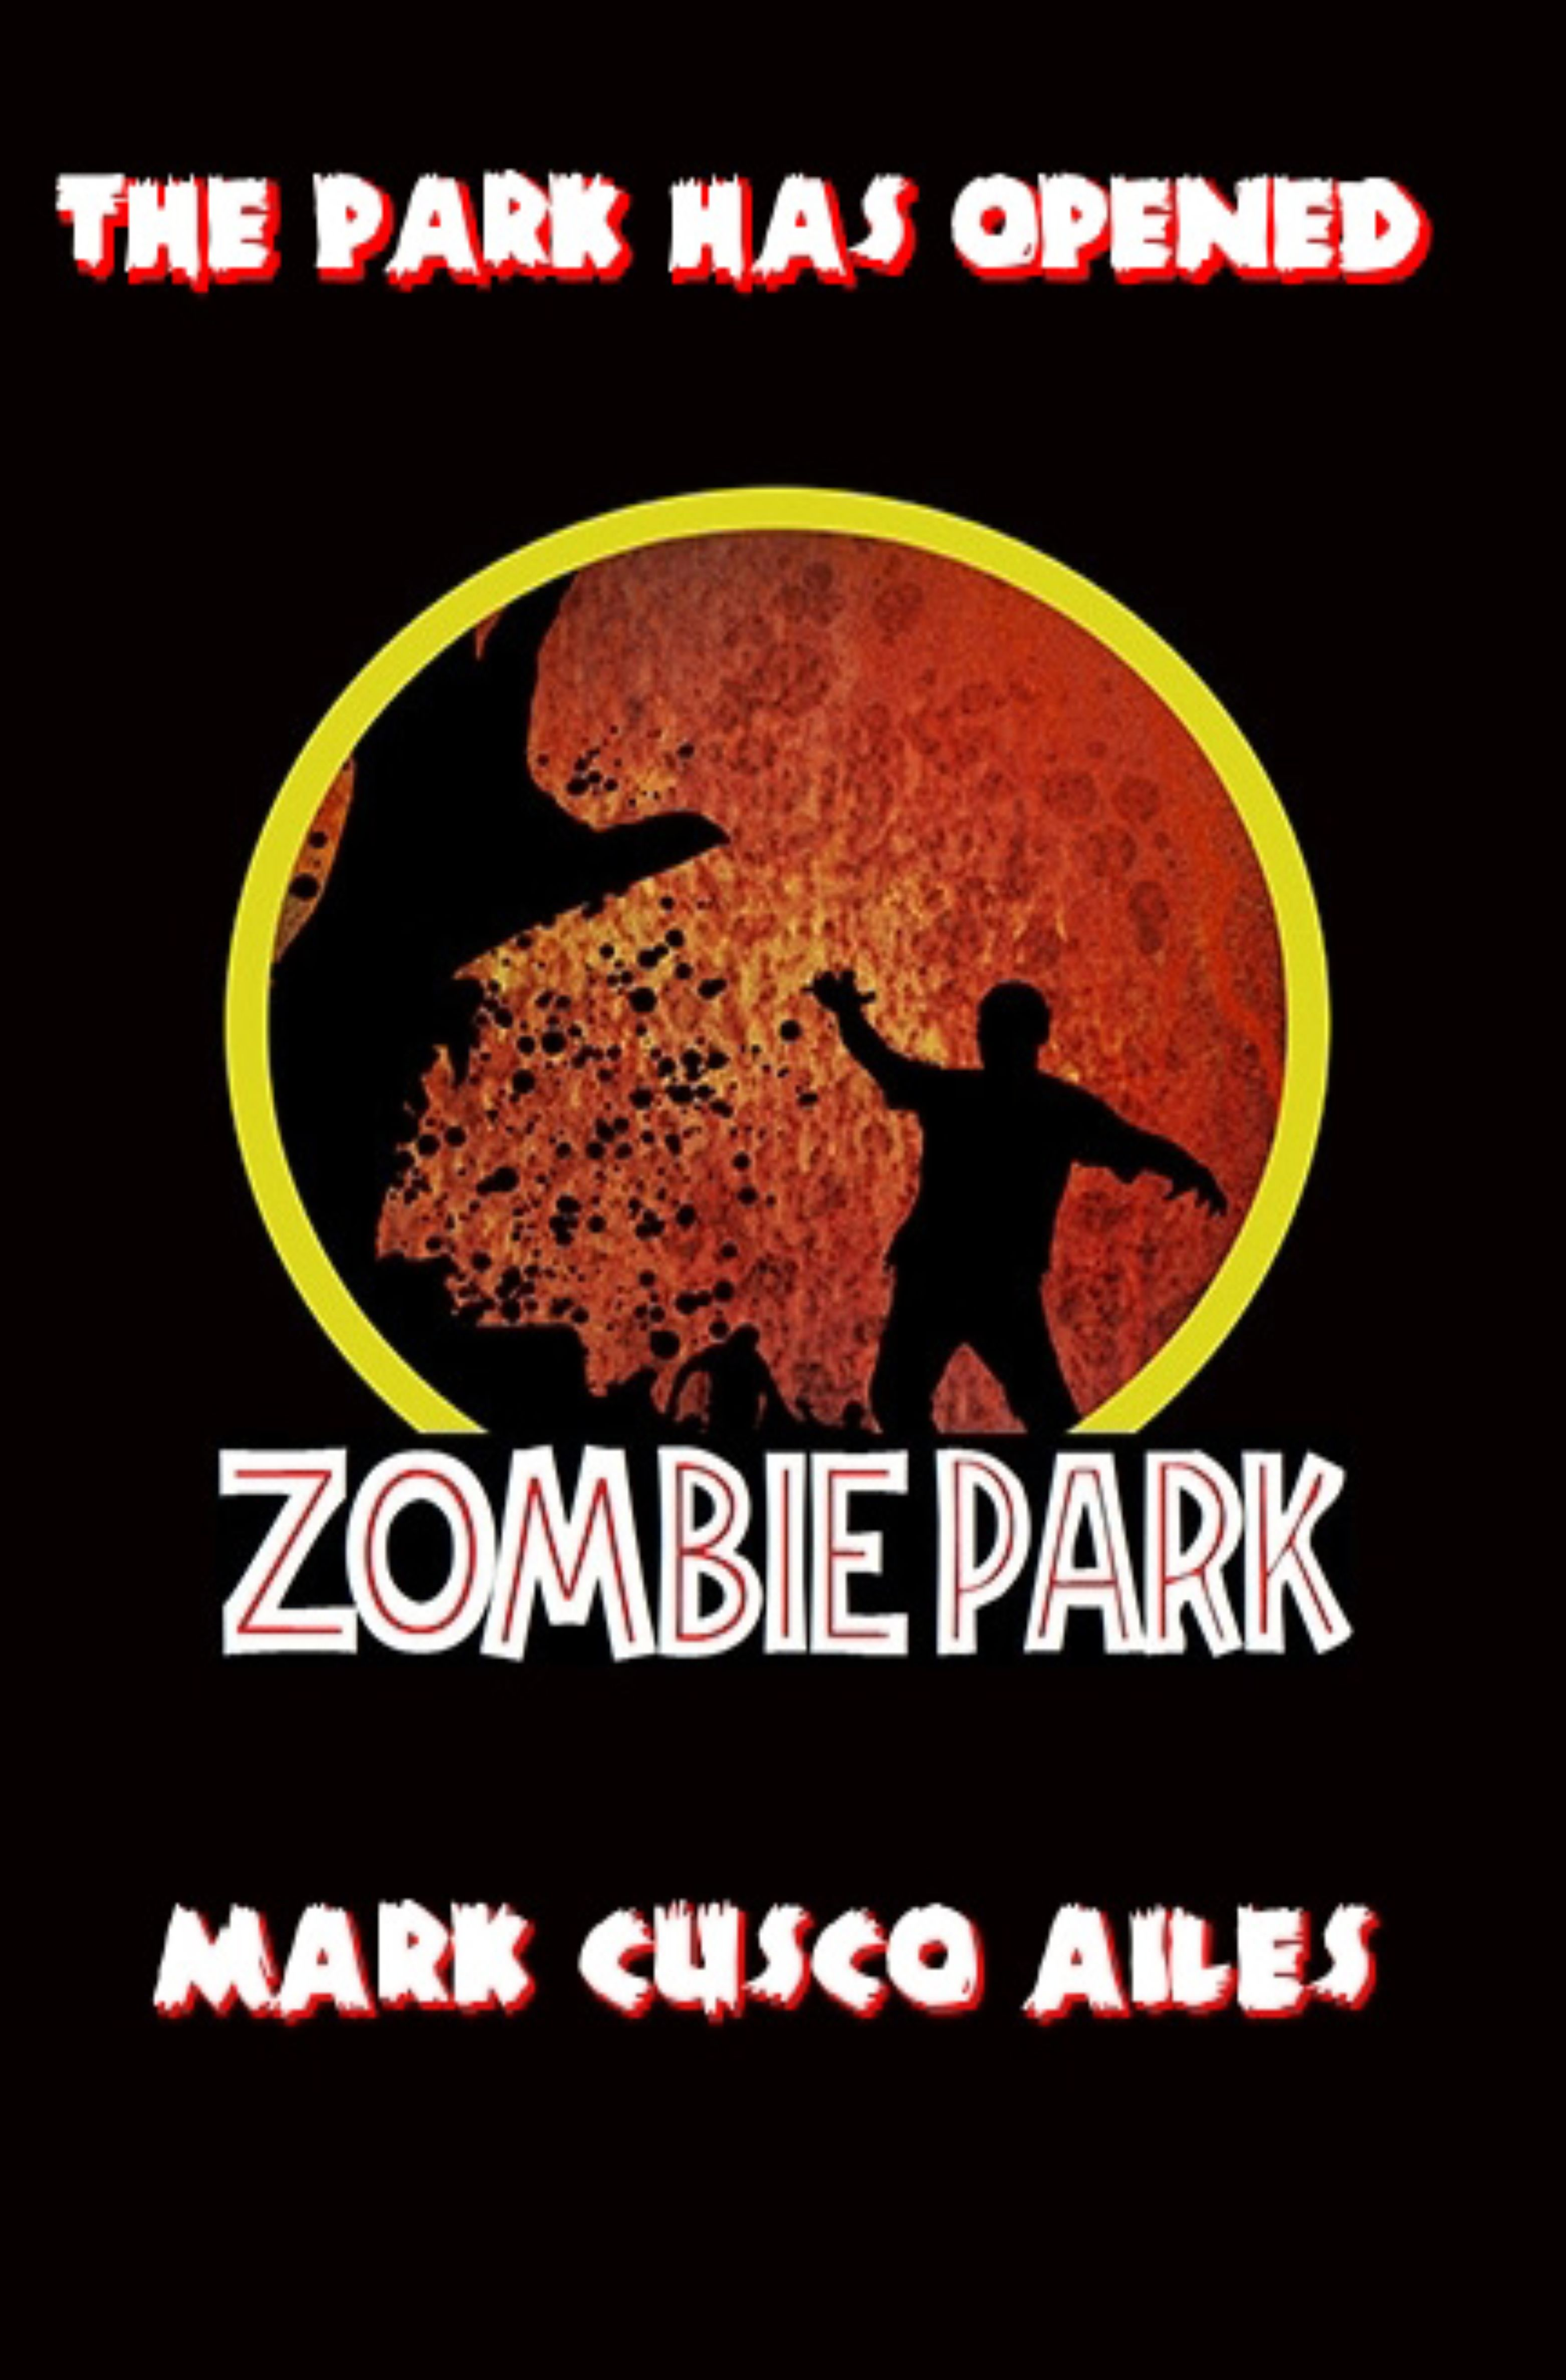 Zombie Park by Mark Cusco Ailes